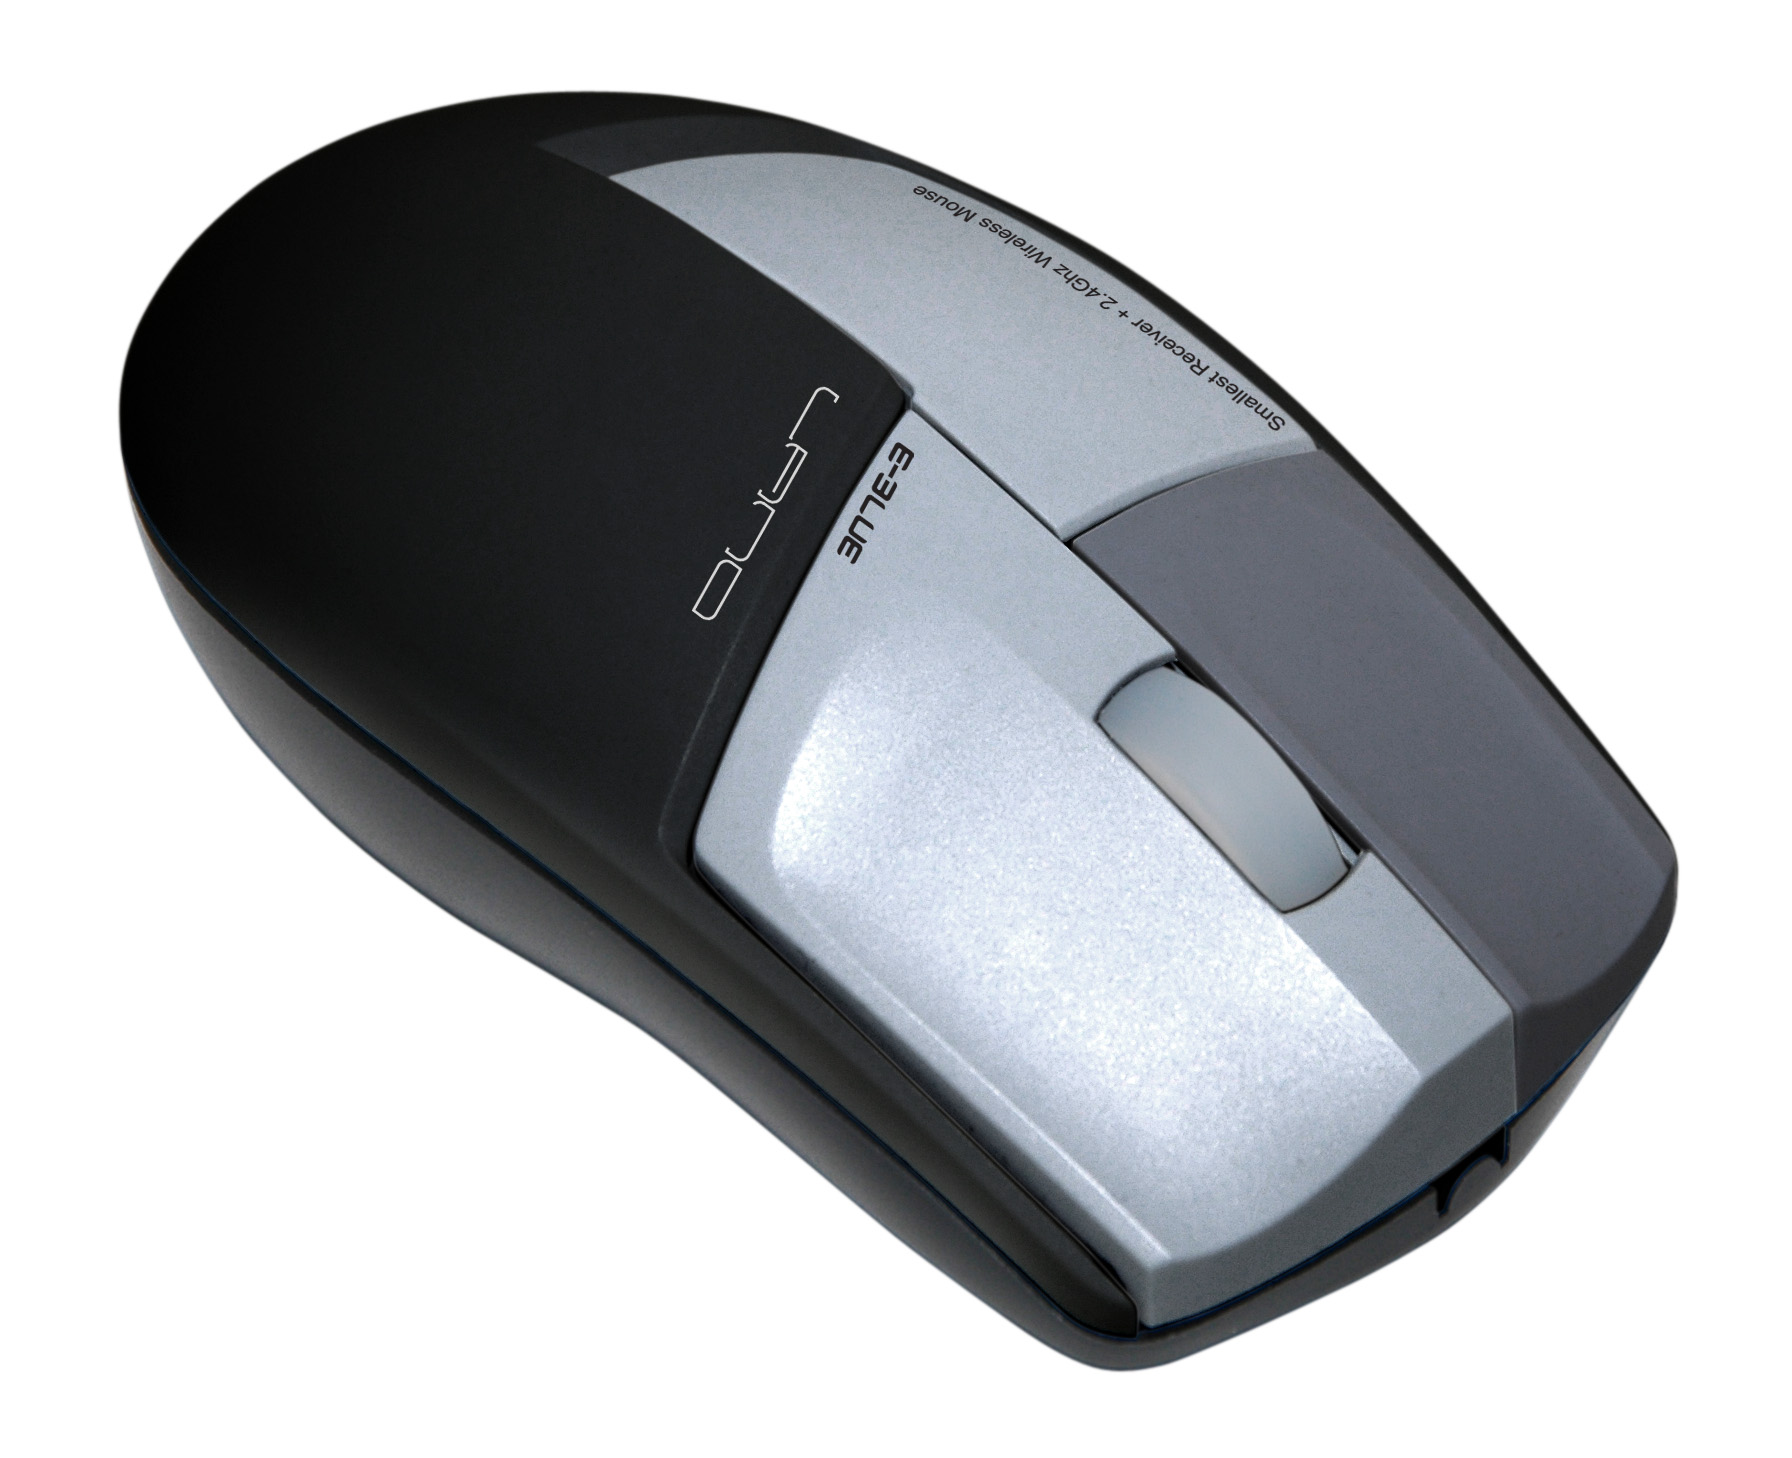 Lano 2.4G Wireless Optical Mouse